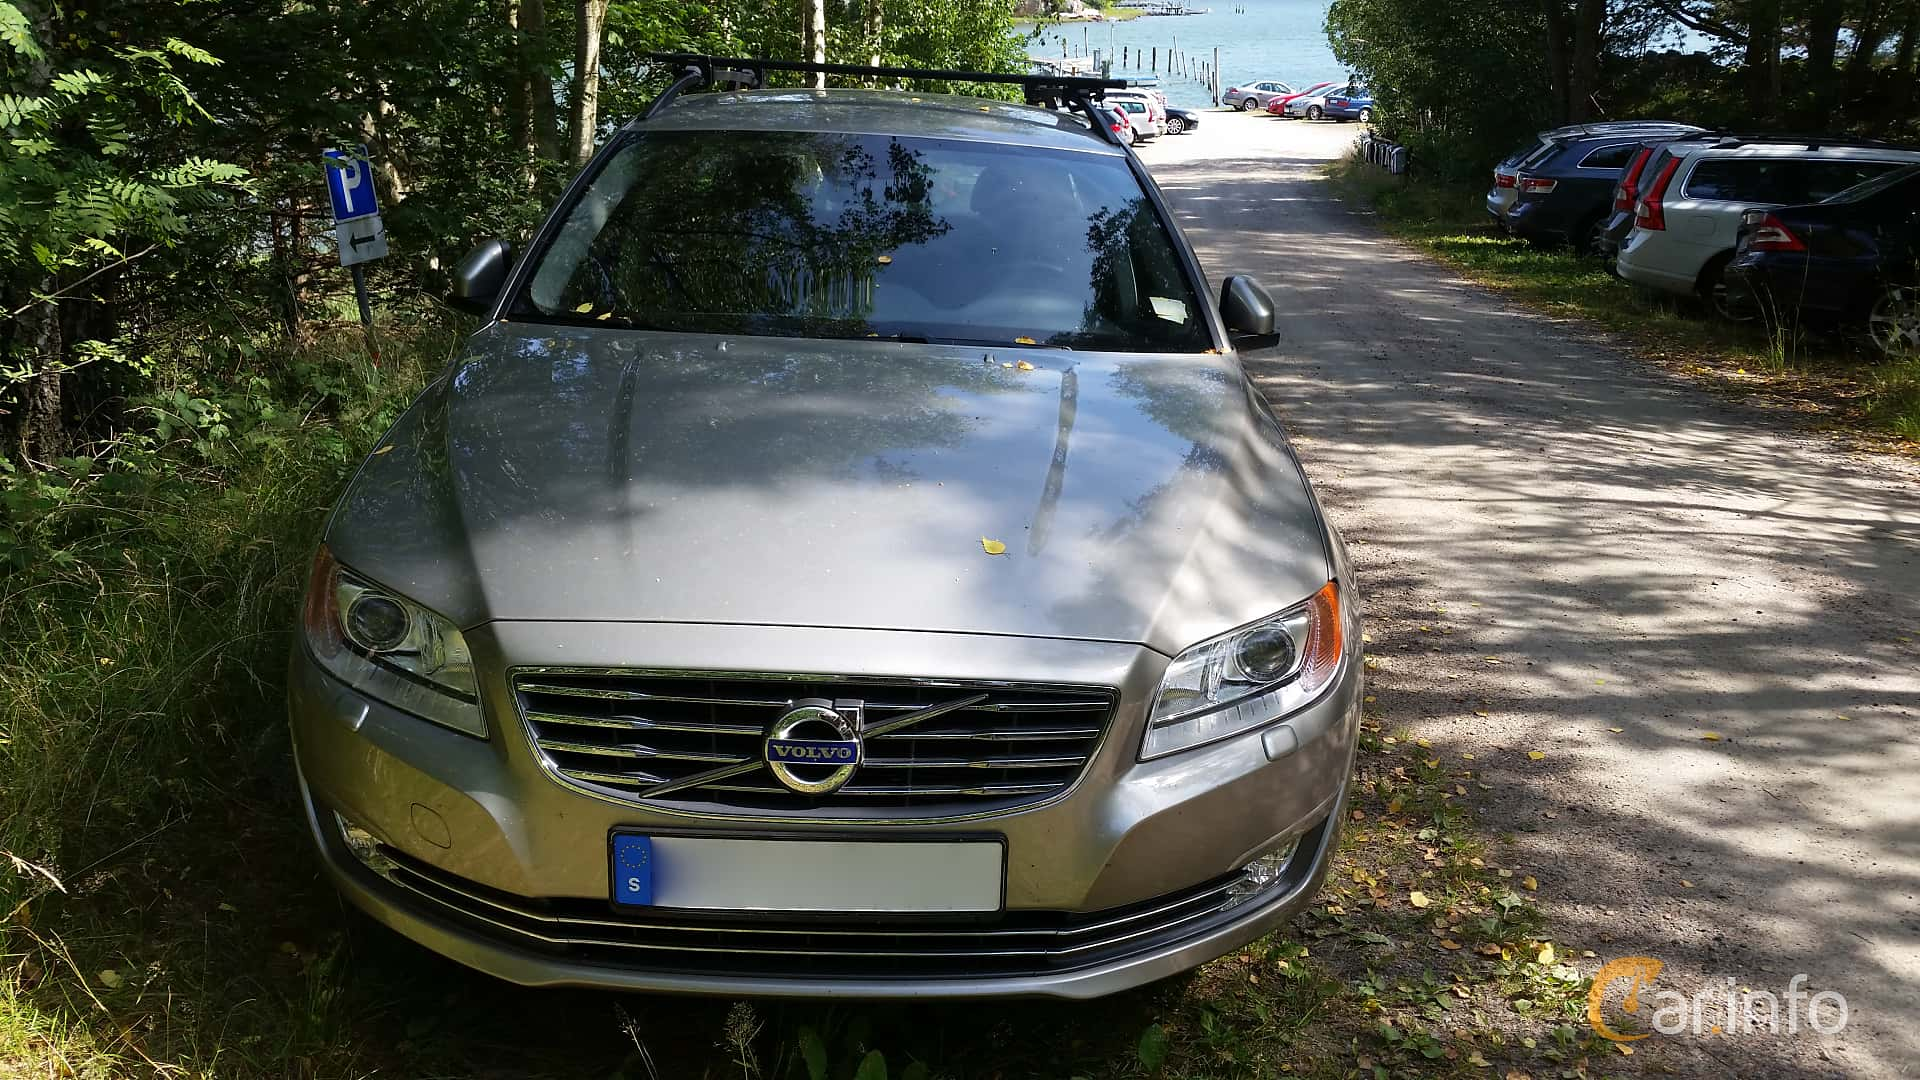 Volvo V70 D4 Geartronic, 181hp, 2014